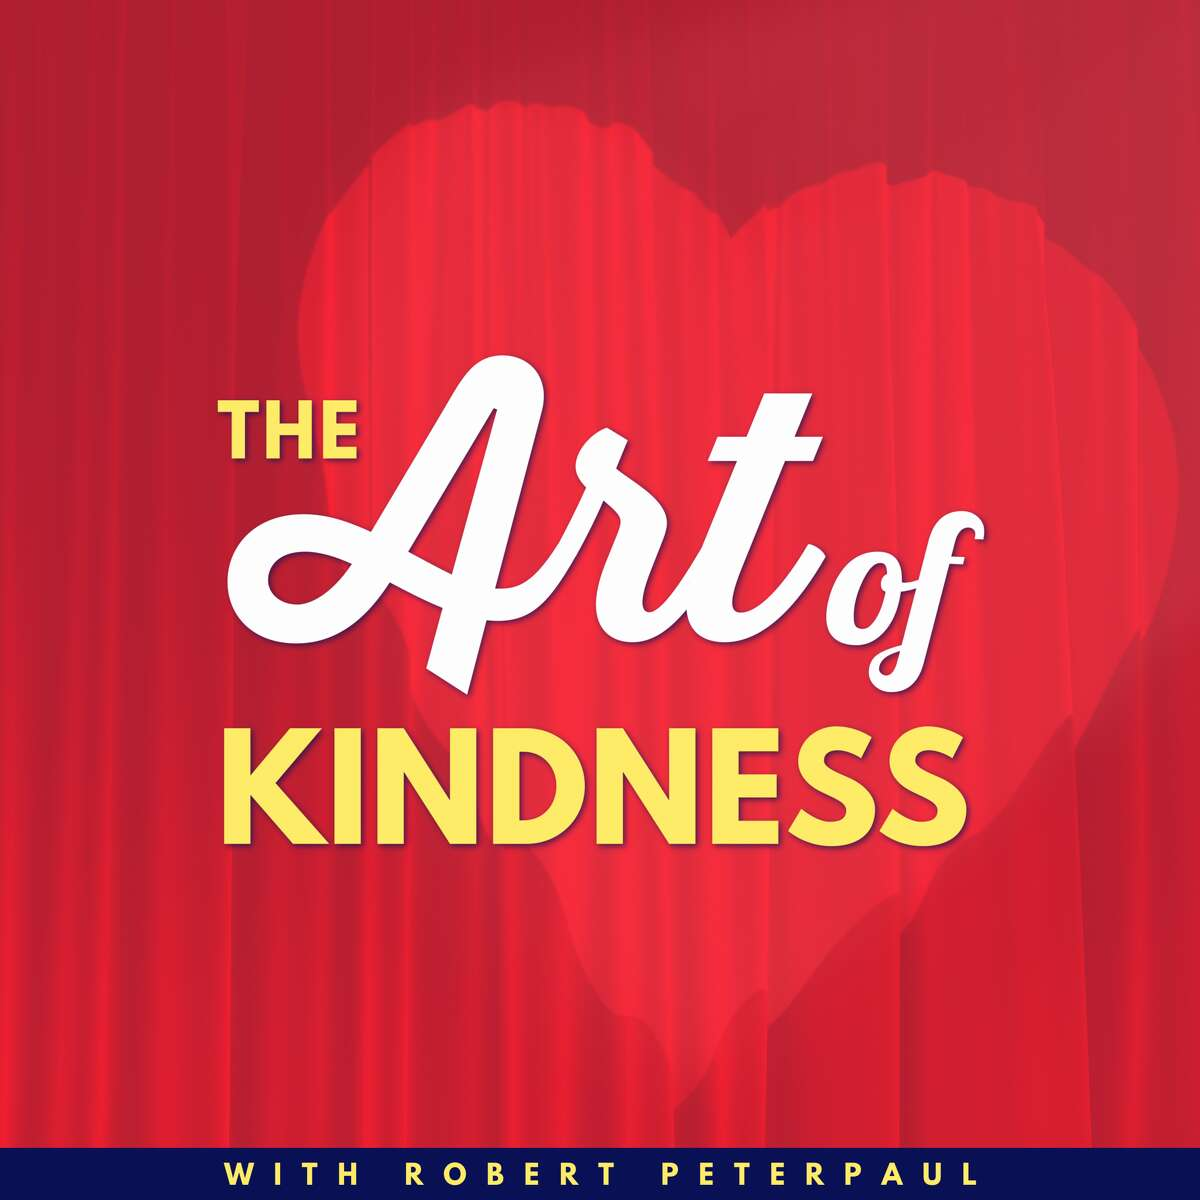 With an array of celebrity guests, host Robert Peterpaul aims to discover what makes his guests so kind and how they can inform his ever-changing definition of kindness.